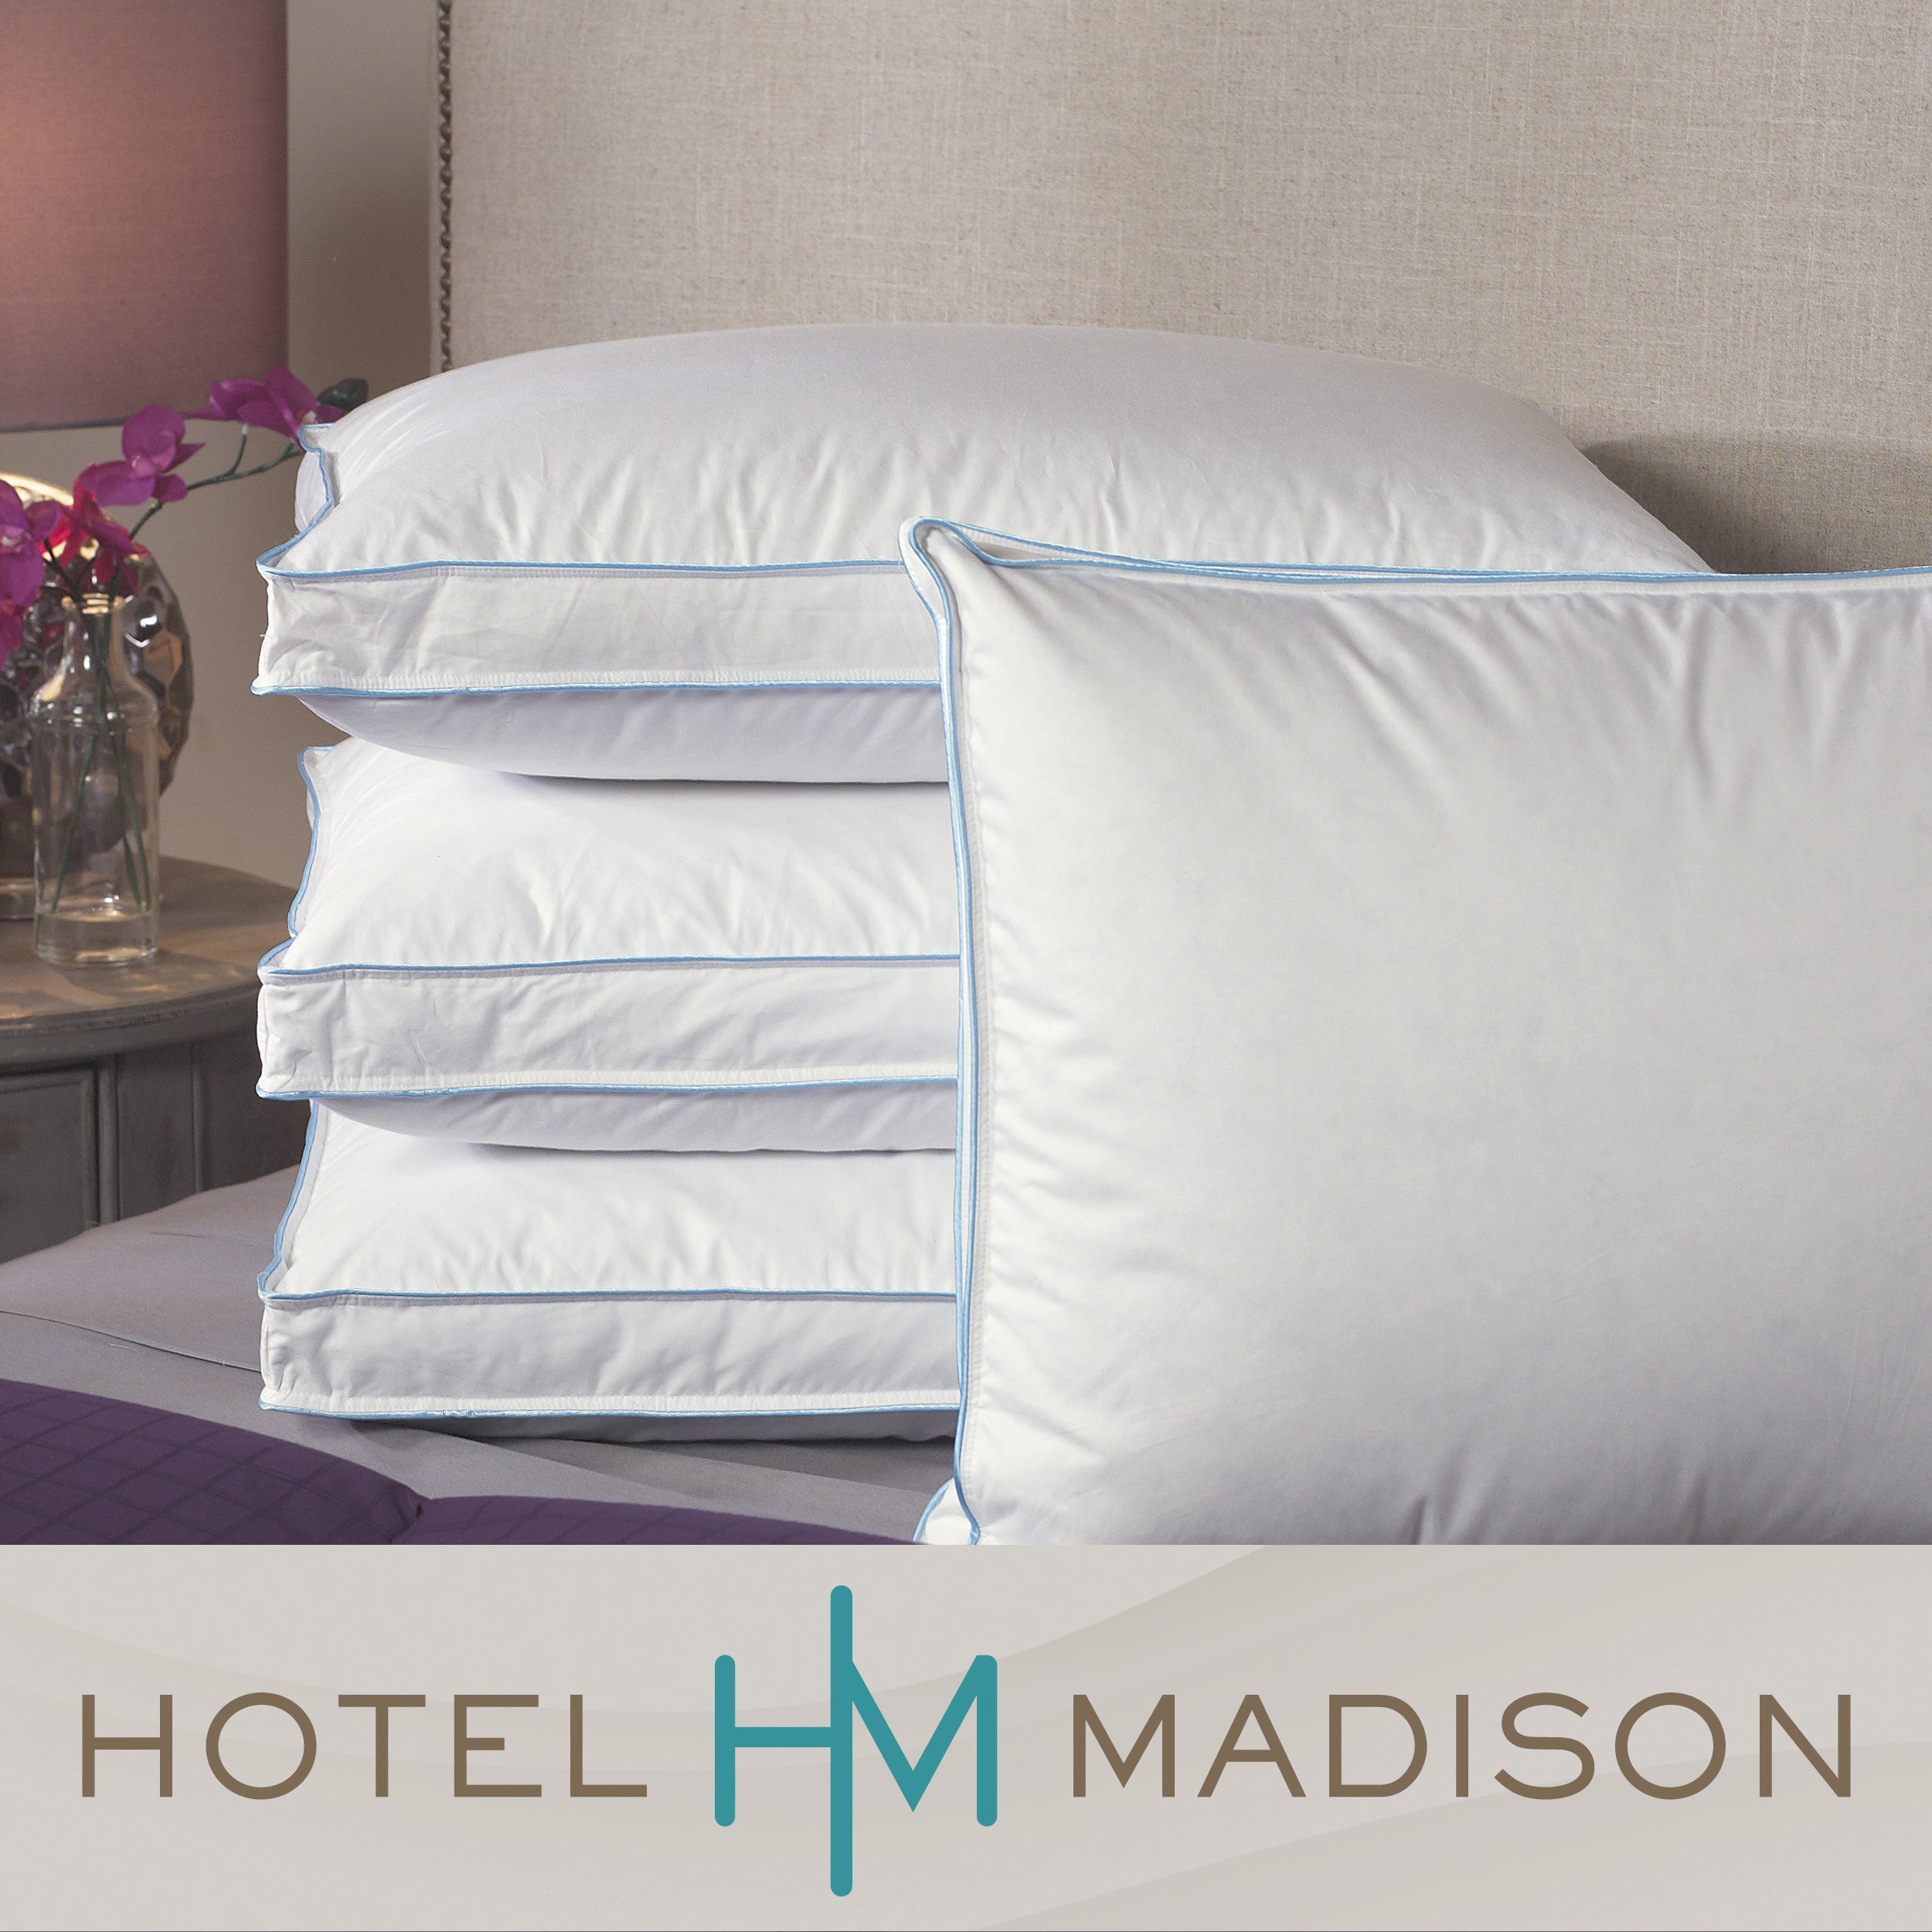 Hotel Madison Premium Support Feather/ Down Pillows (Set of 4)